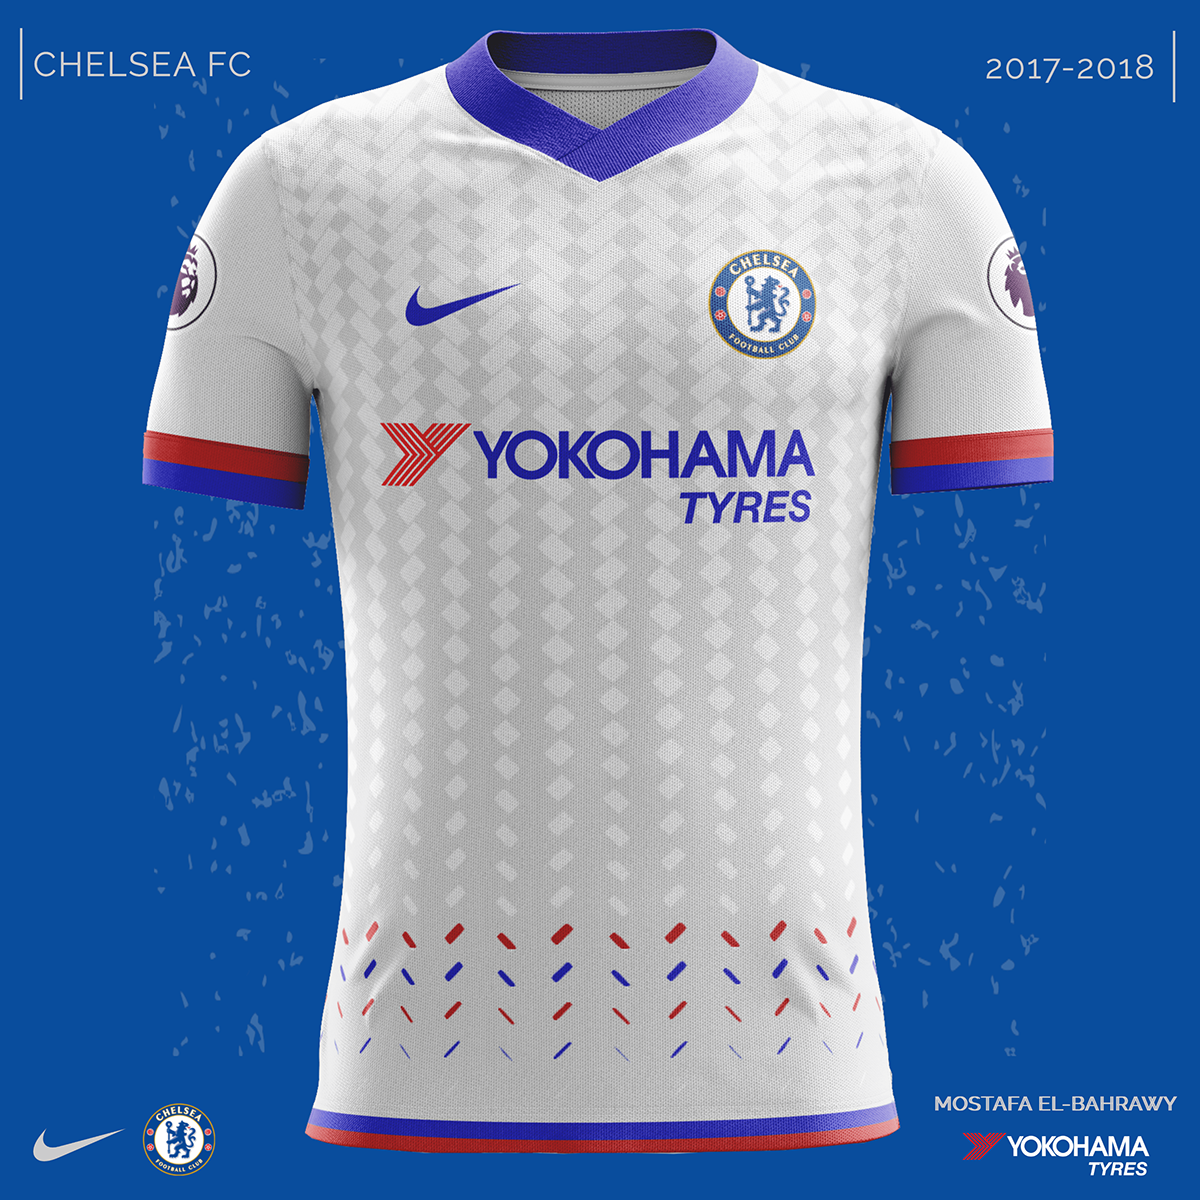 d08208a54 Chelsea Nike Kits (2017-2018) on Behance